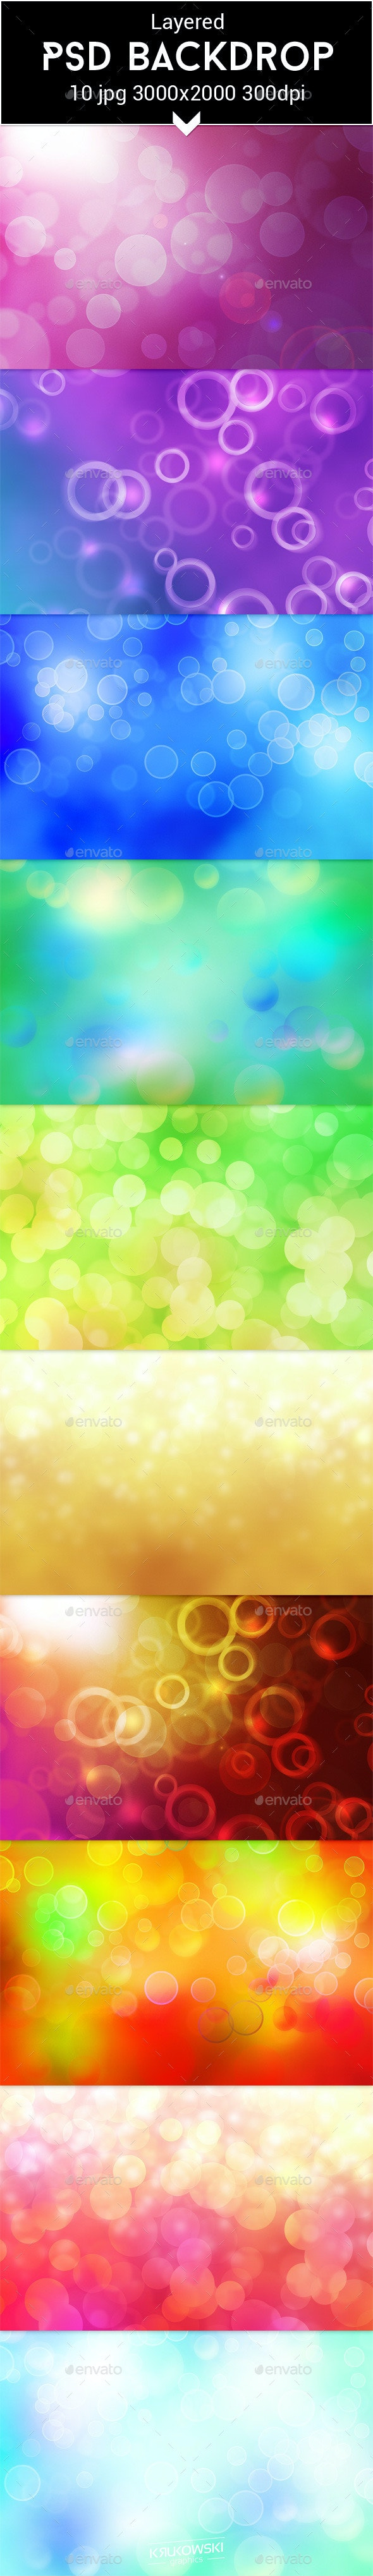 Bokeh PSD Backdrop - Abstract Backgrounds